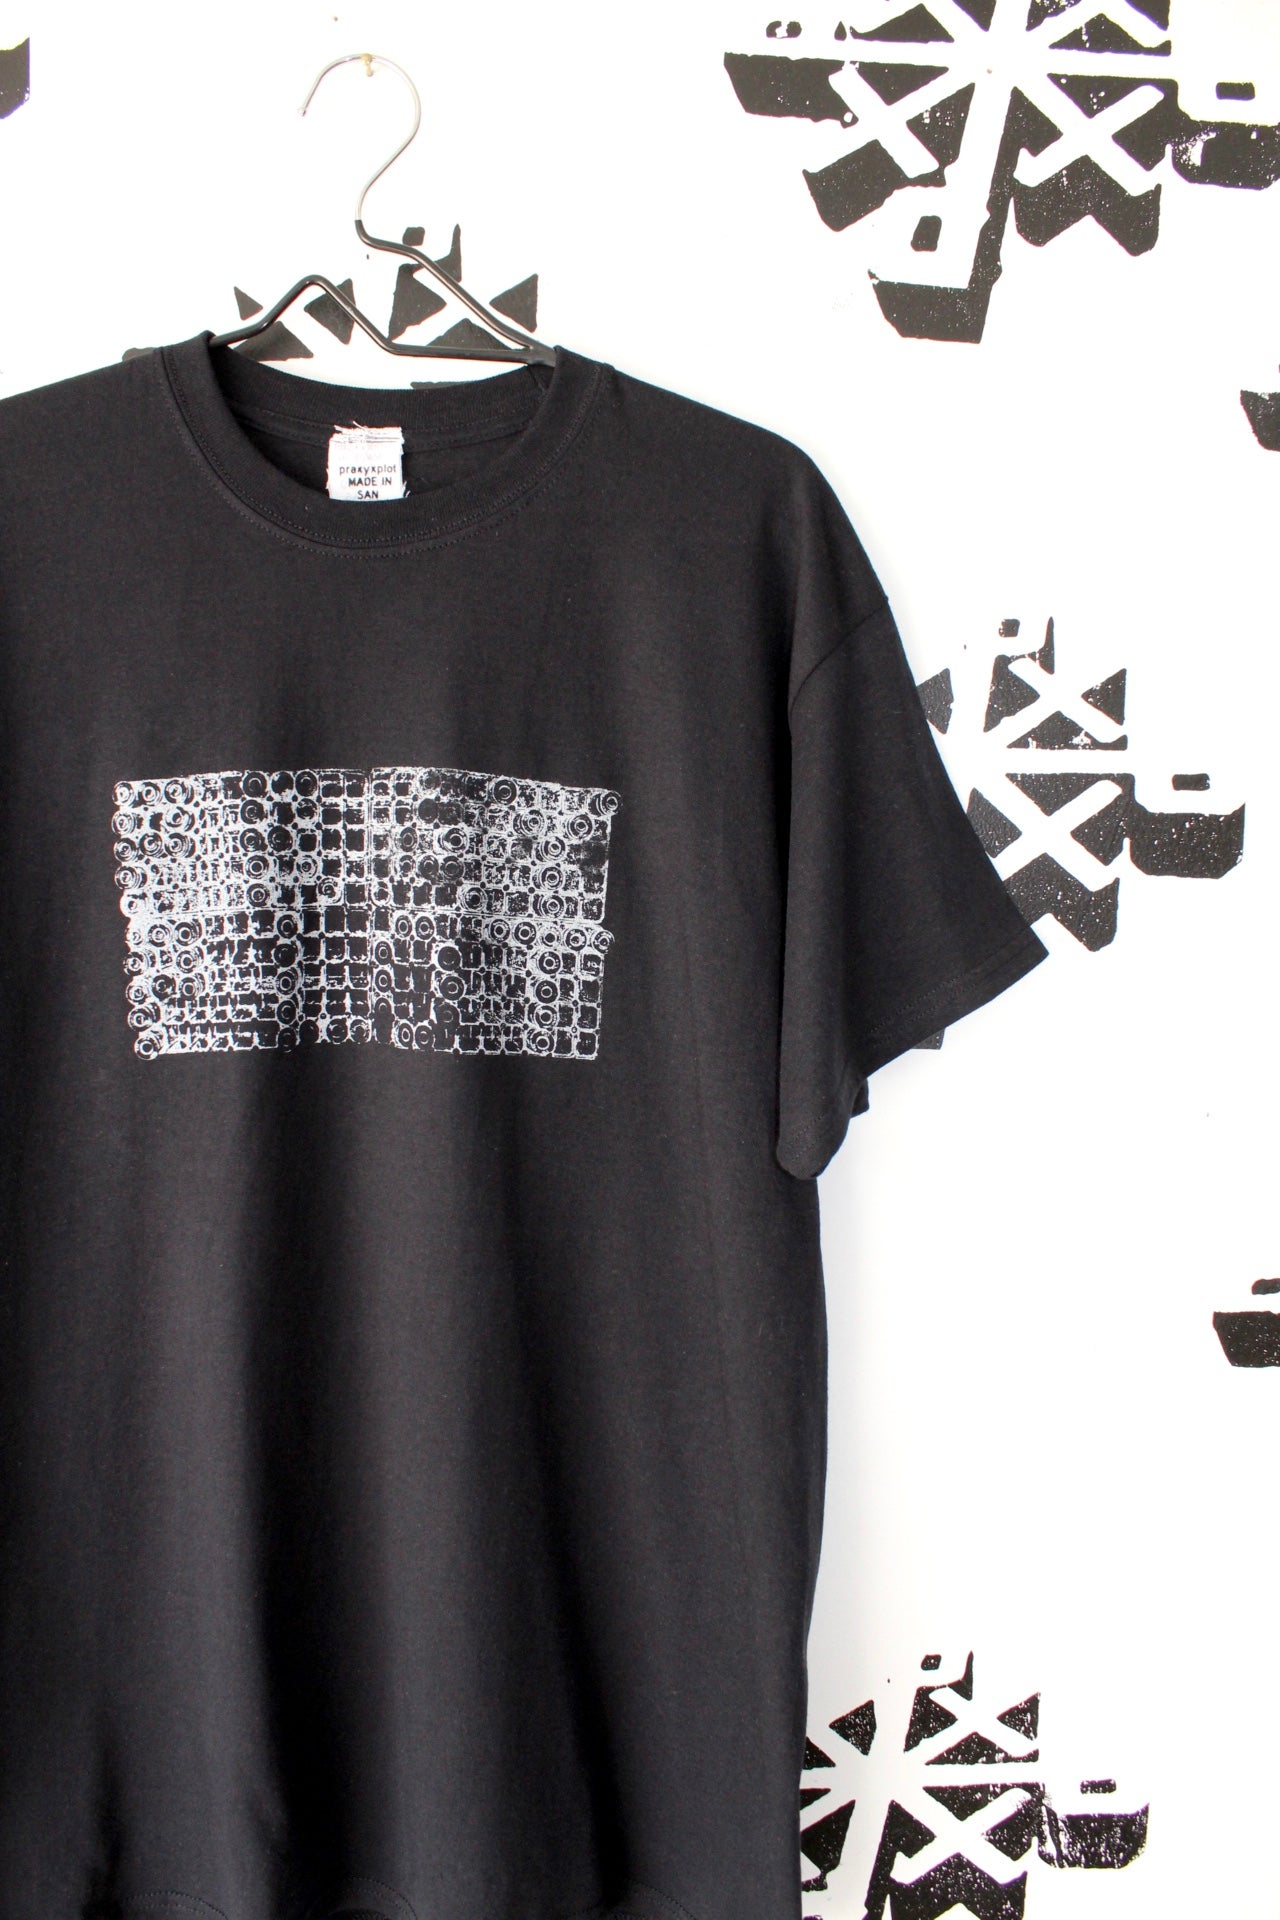 Image of locked and loaded tee in black